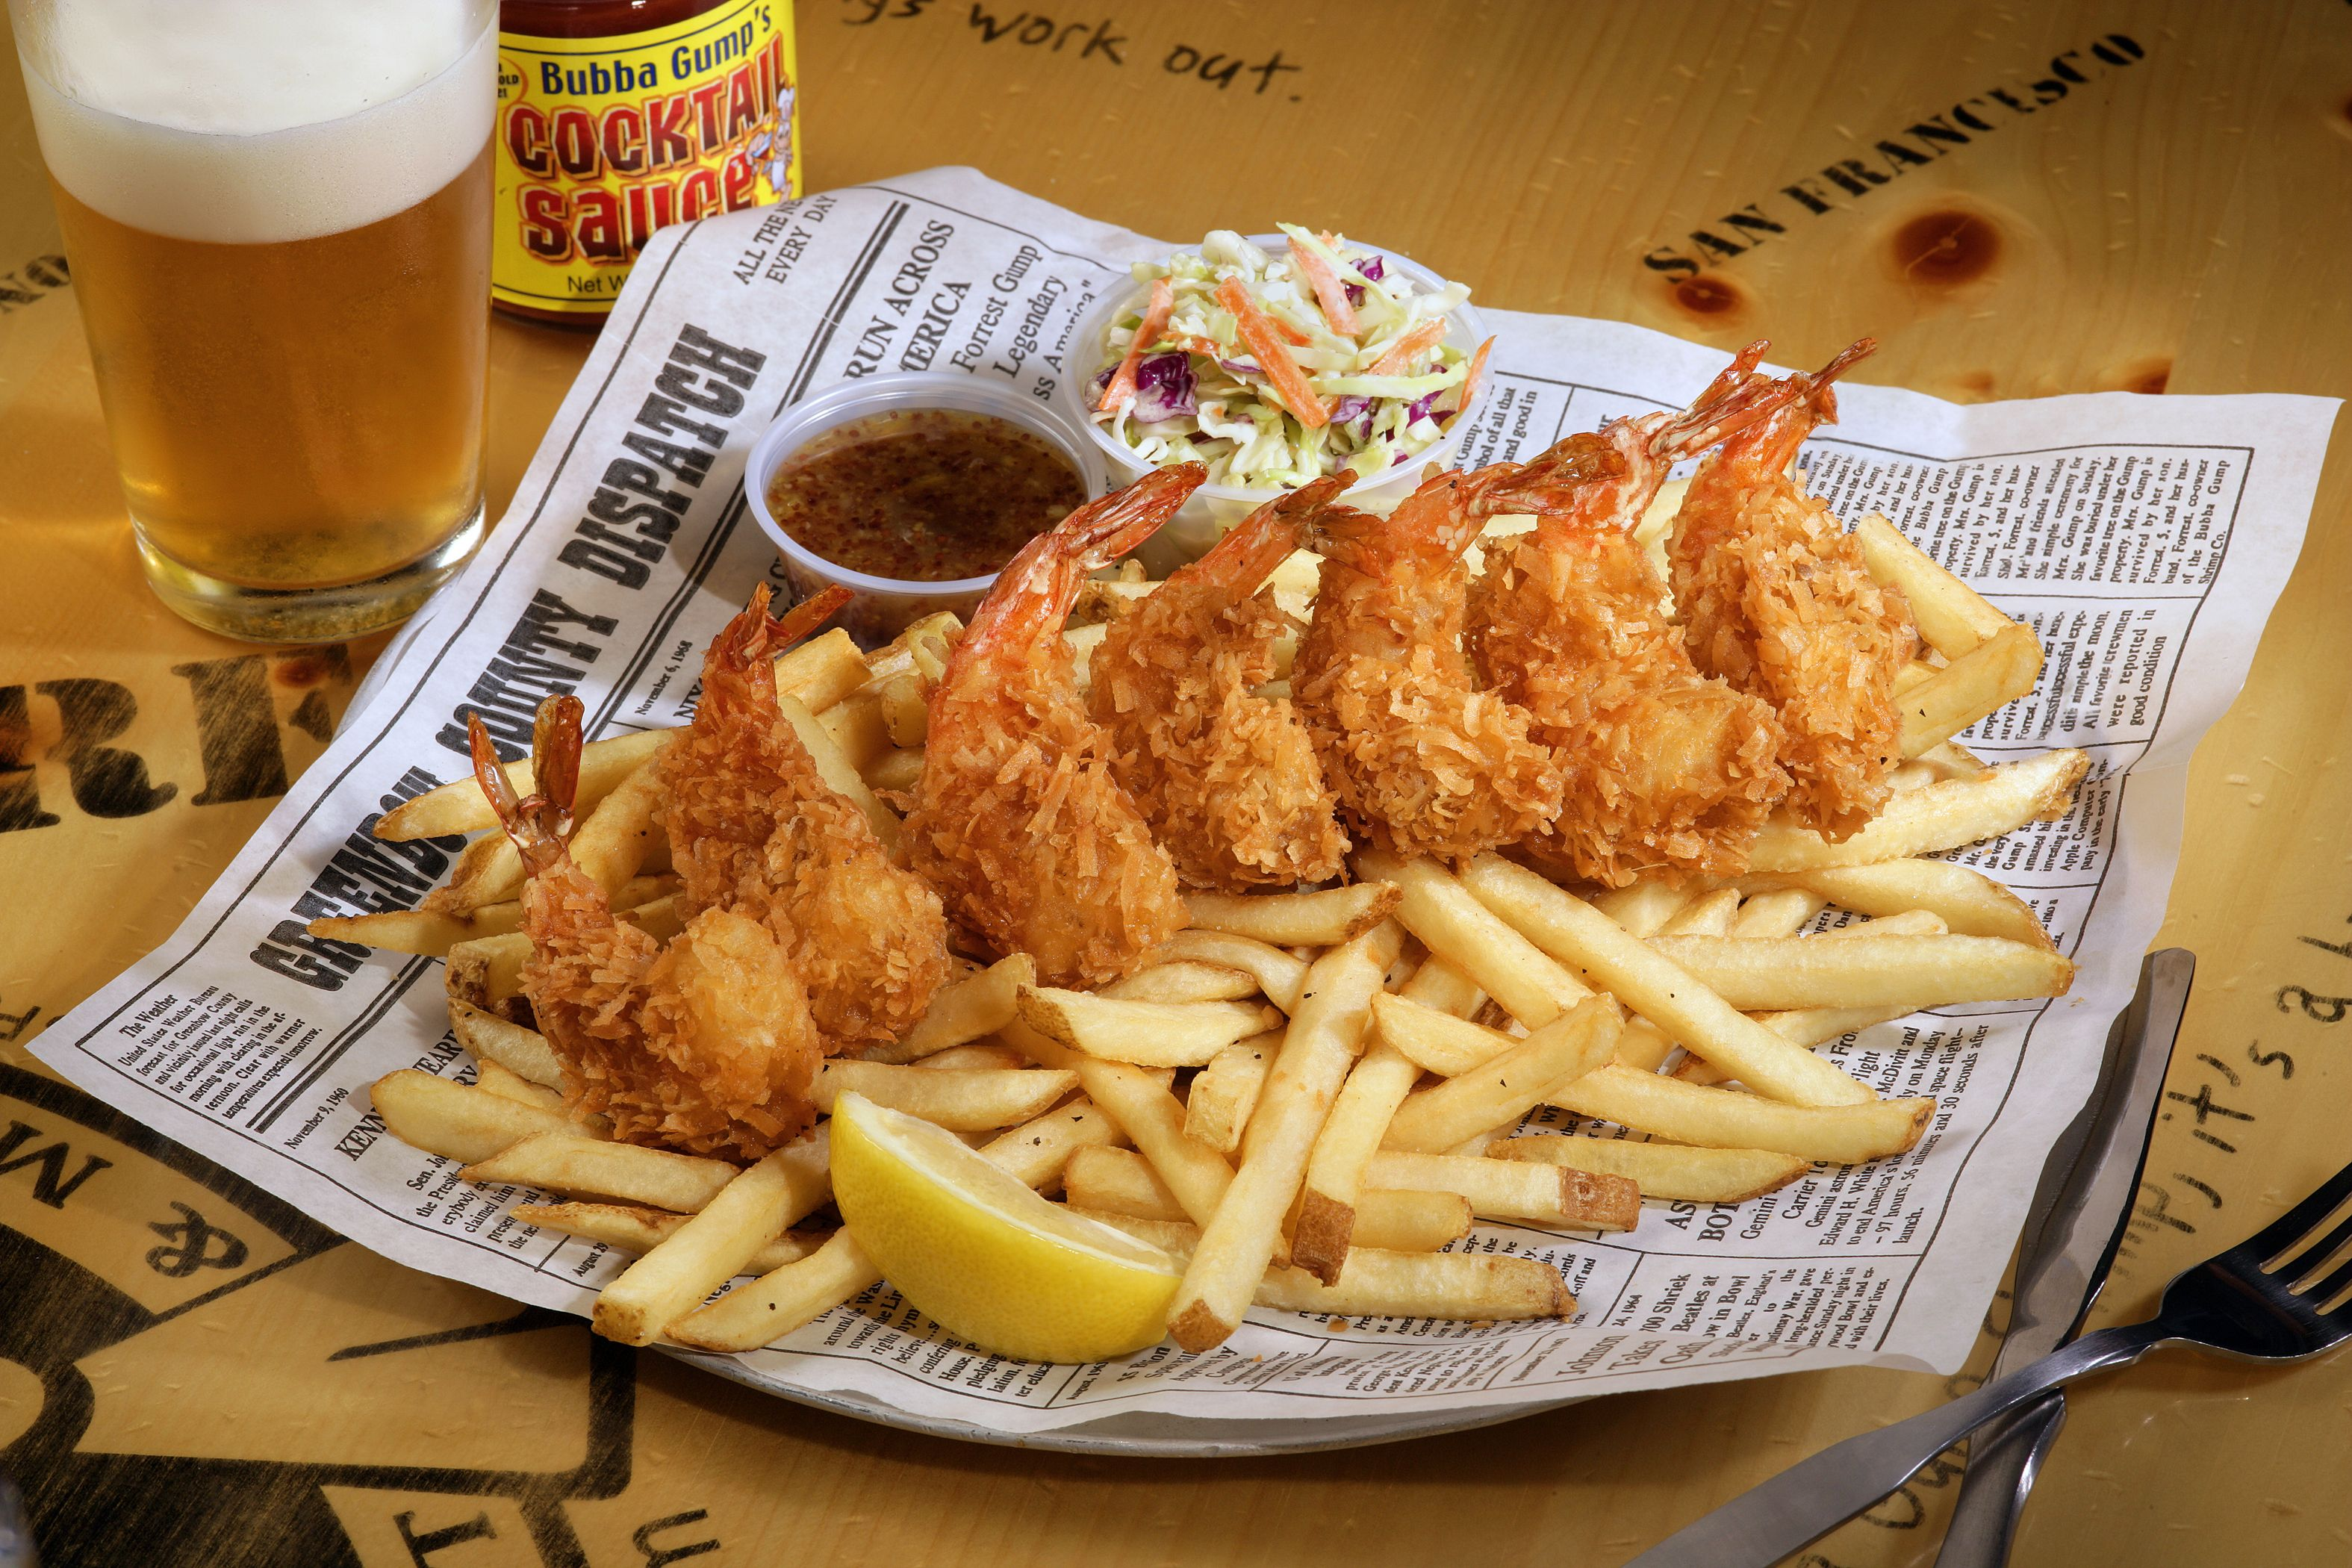 Dumb Luck Coconut Shrimp Bubba Gump Shrimp Co Restaurants  # Muebles Ros Bubua